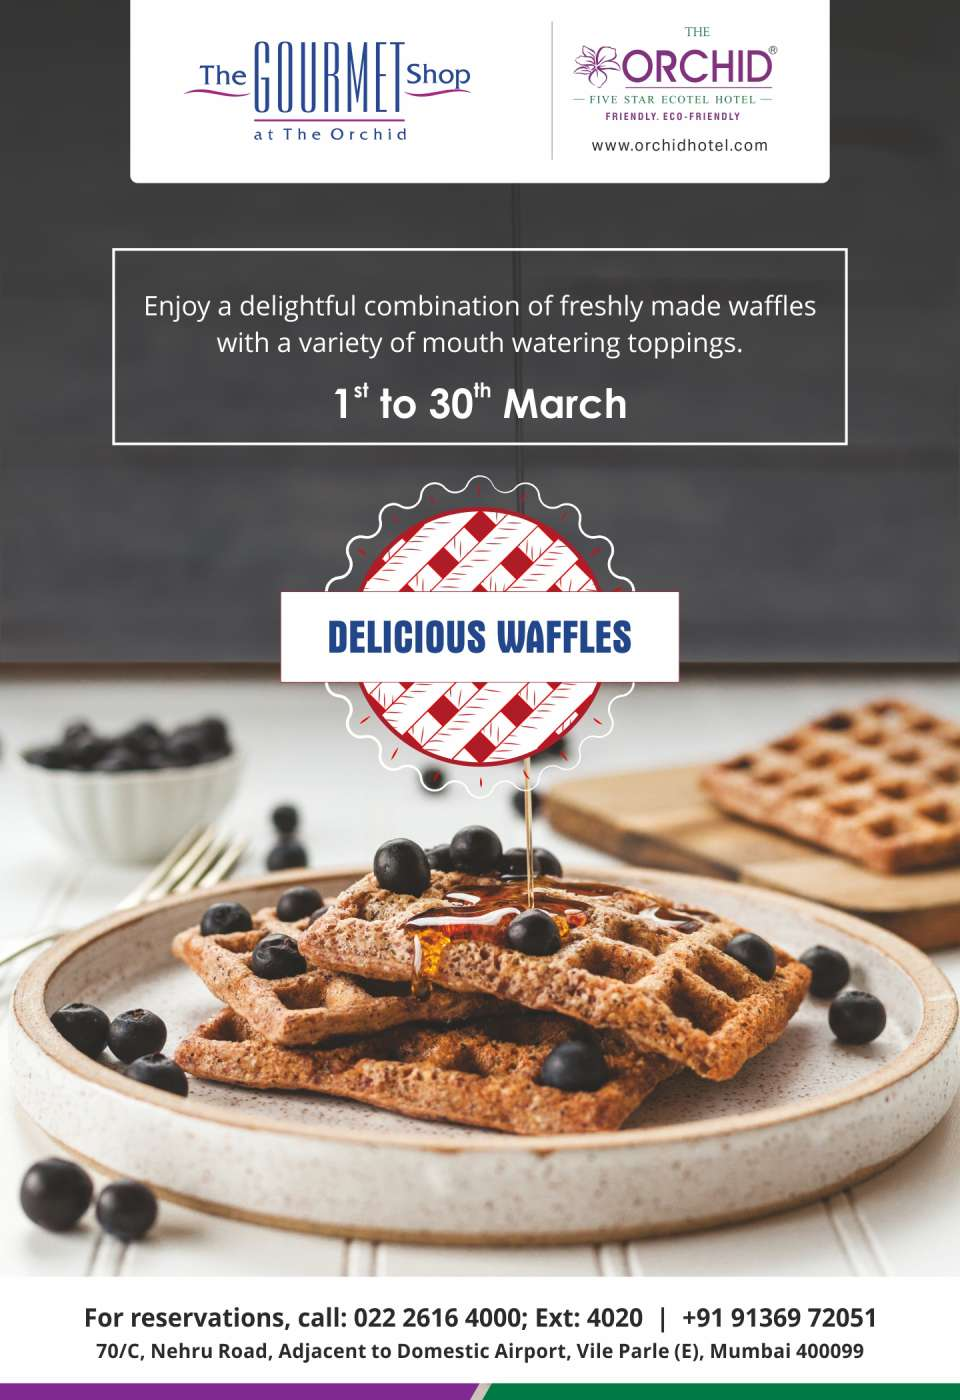 The Orchid Hotel Mumbai Vile Parle Waffle Promotion